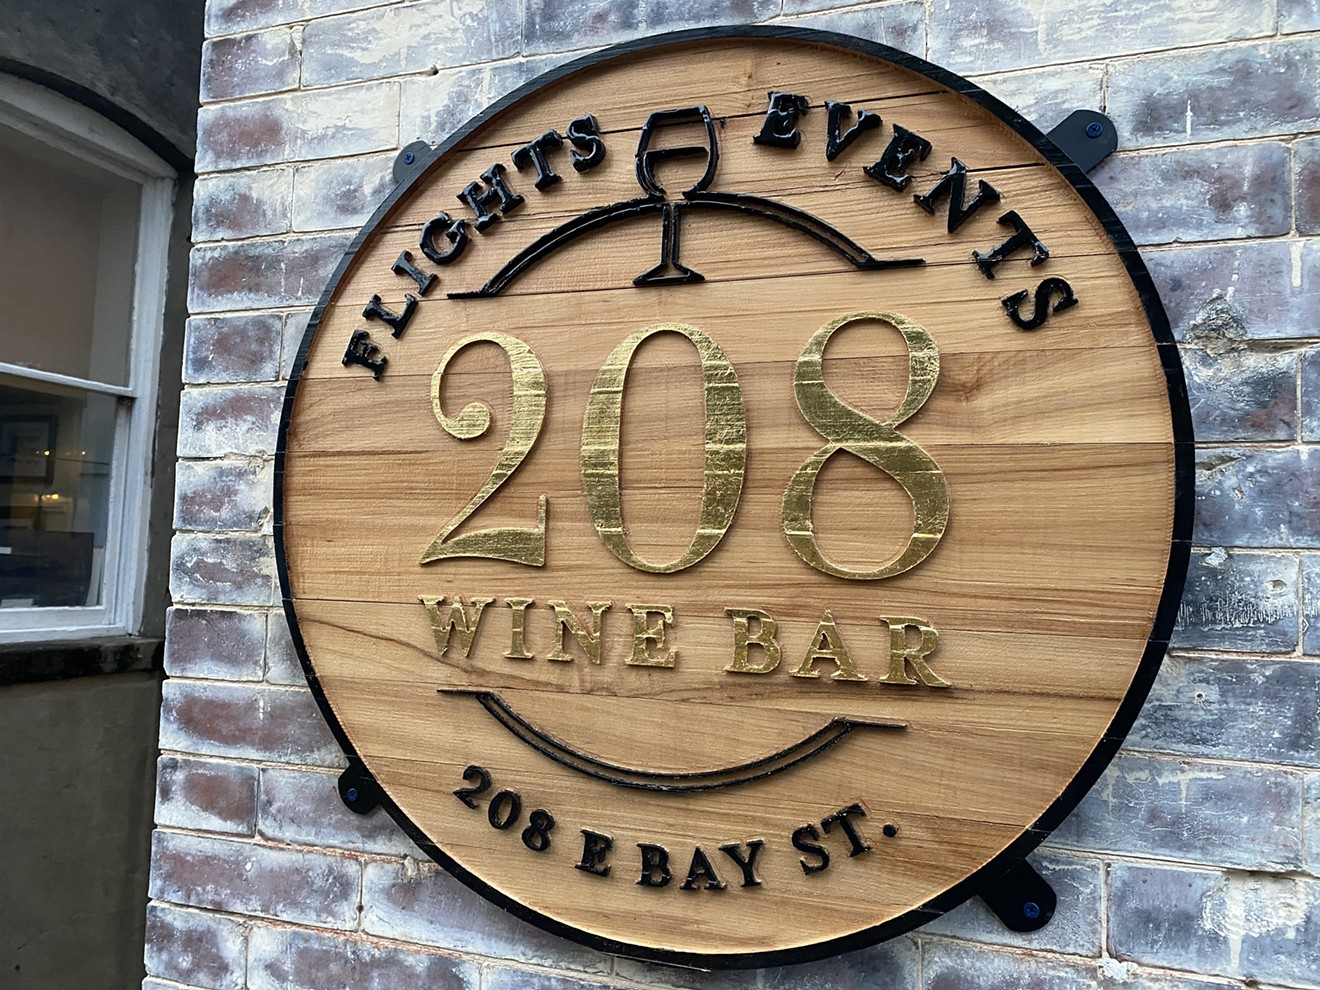 The 208 Wine Bar opens on Bay St., overlooking the Savannah River. The wine bar opened July 1 and operates from 2 p.m. to 10 p.m. all but two days a week.